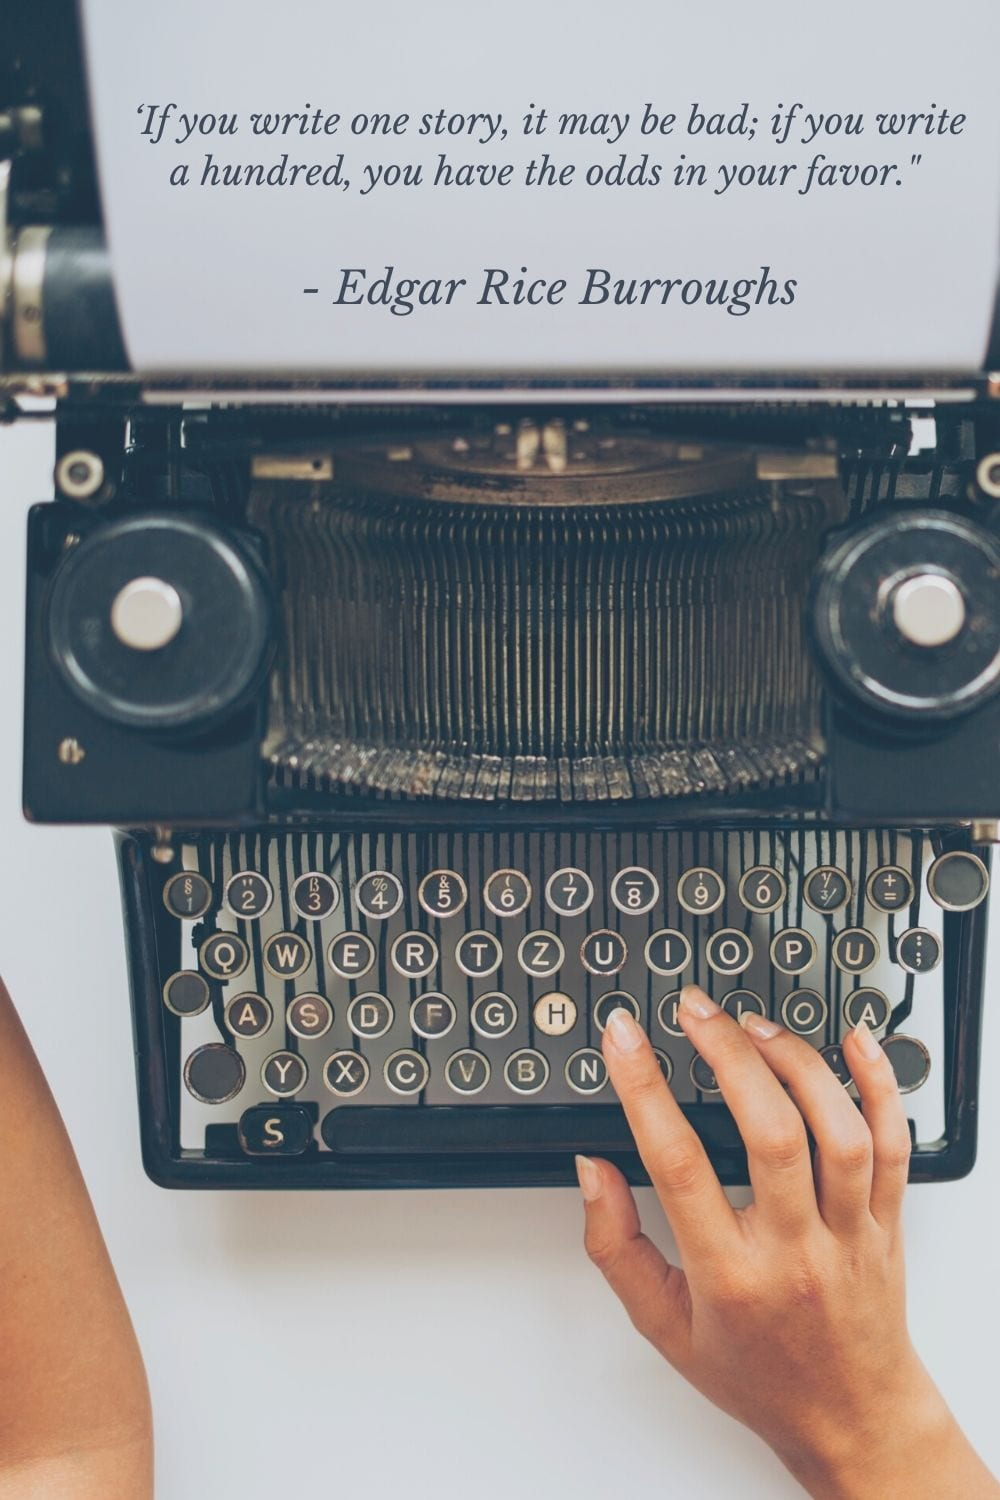 Edgar Rice Boroughs quote on writing